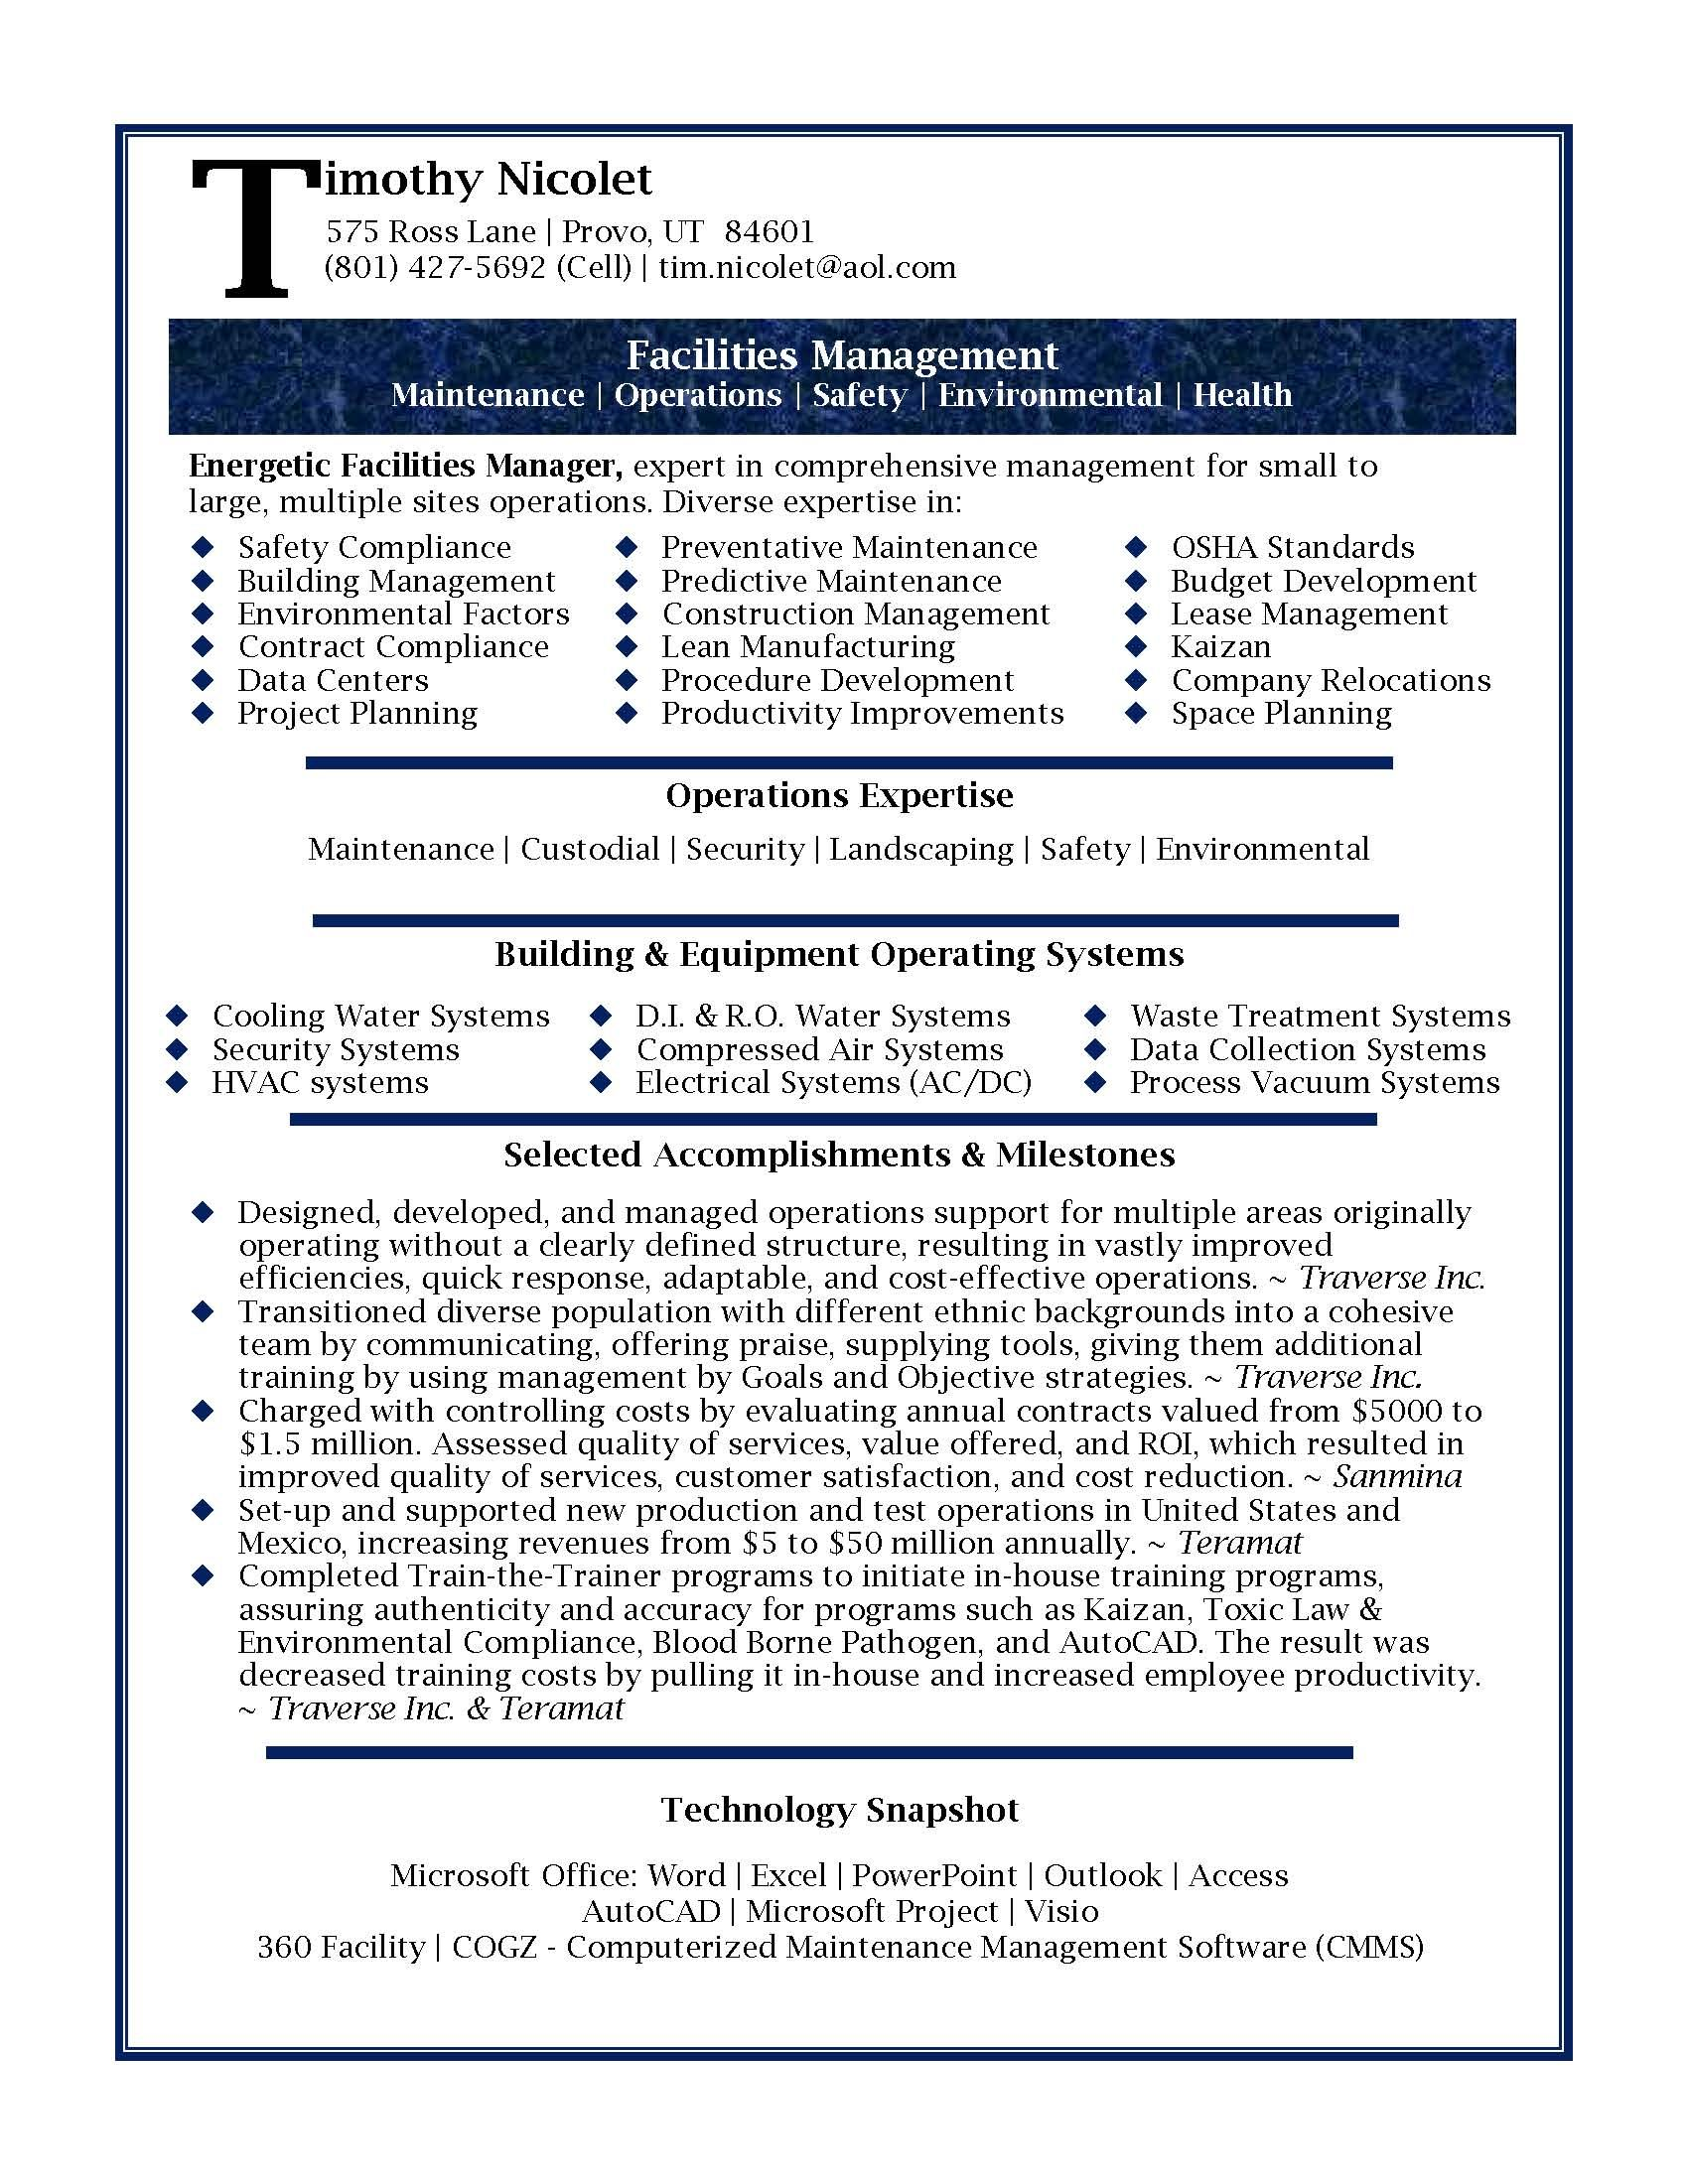 resume samples professional facilities manager resume sample - Expert Resume Samples